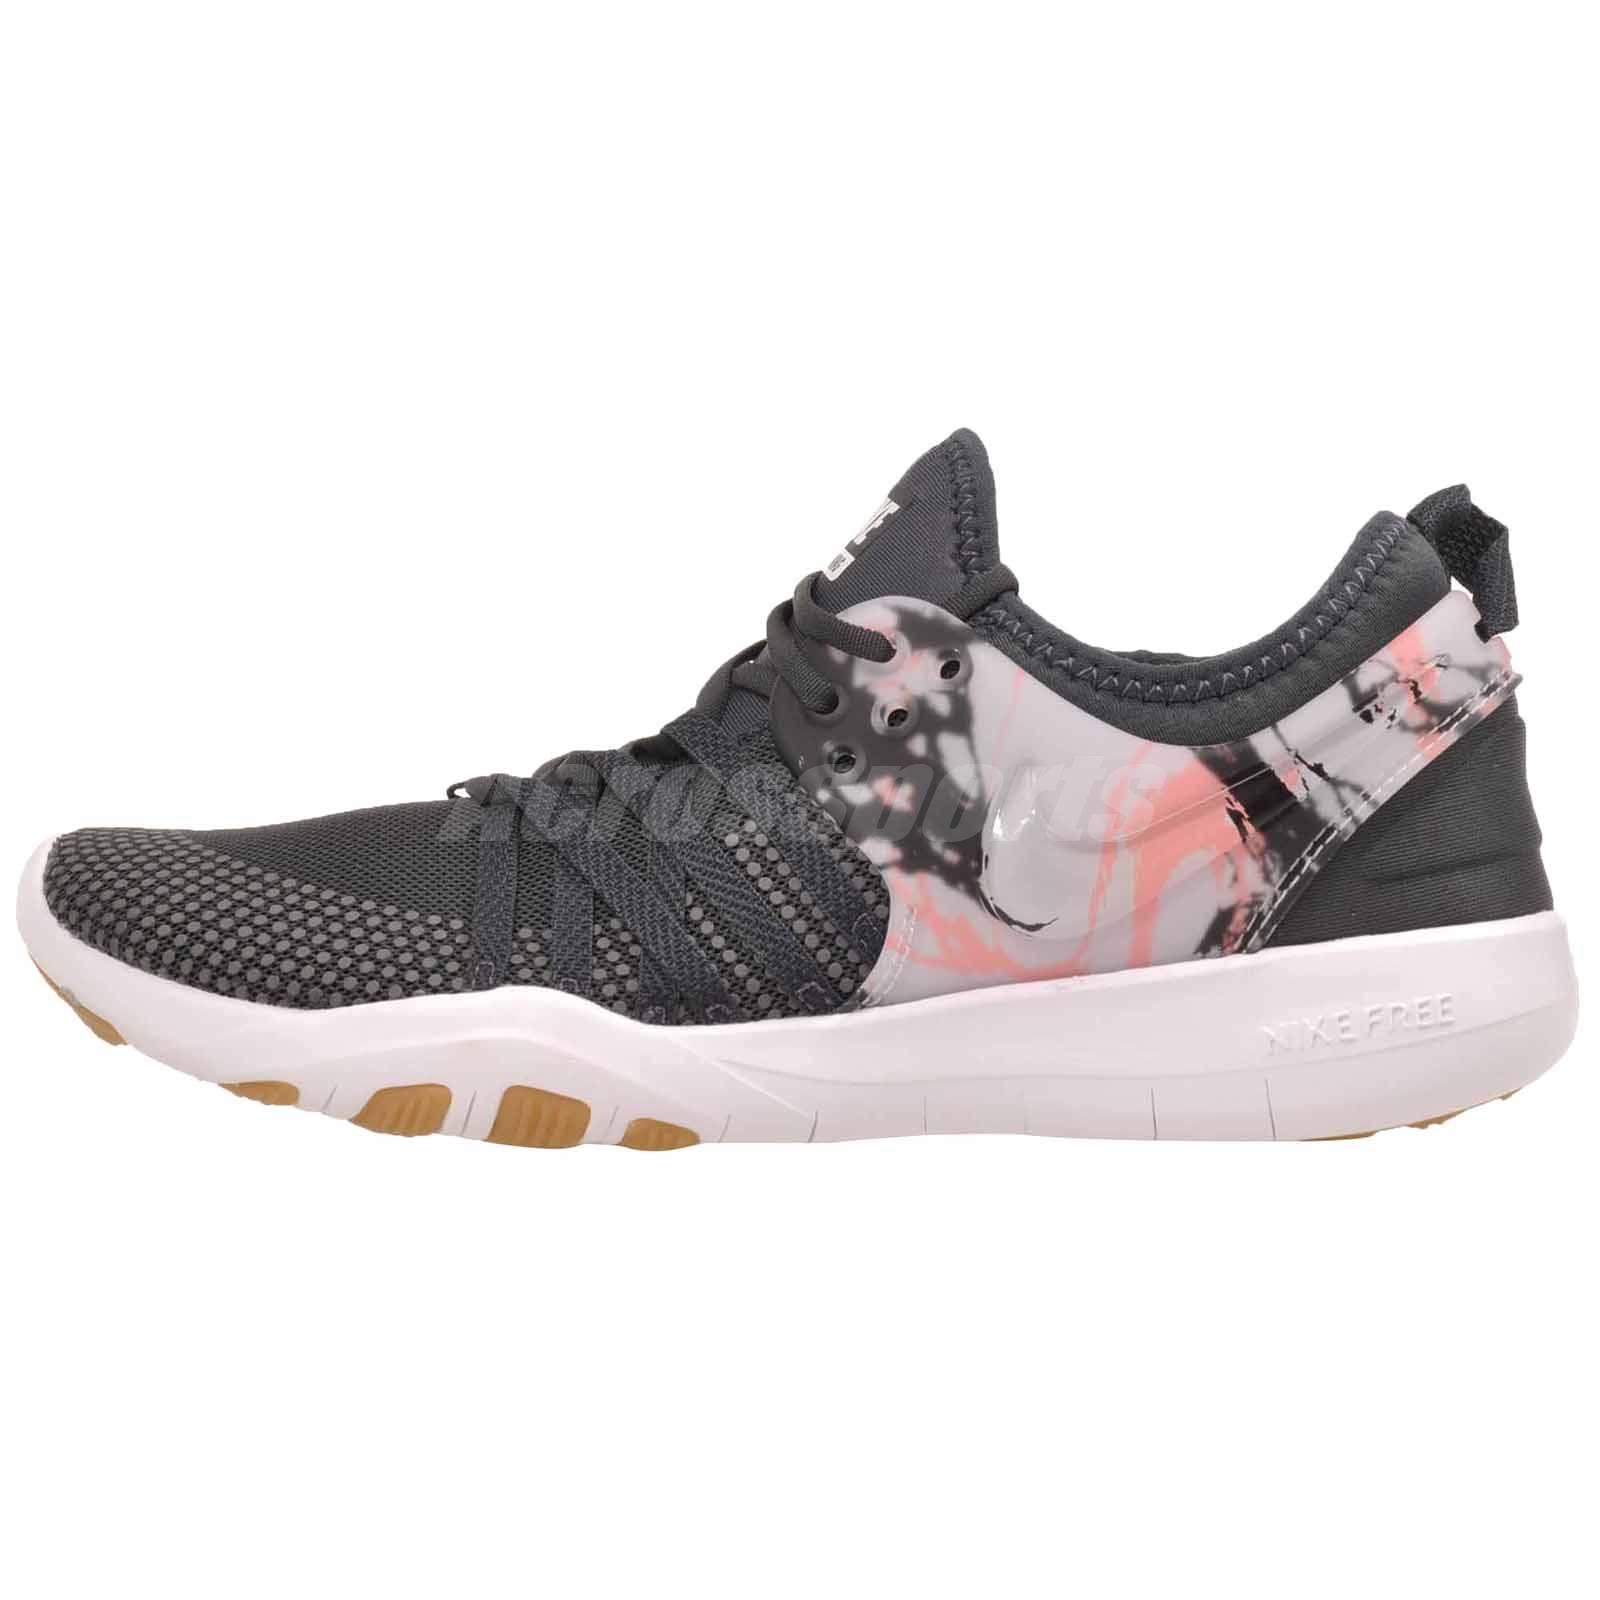 Details about Nike Wmns Free TR 7 Cross Training Womens Shoes Anthracite  904651-006 d0e9a42acf